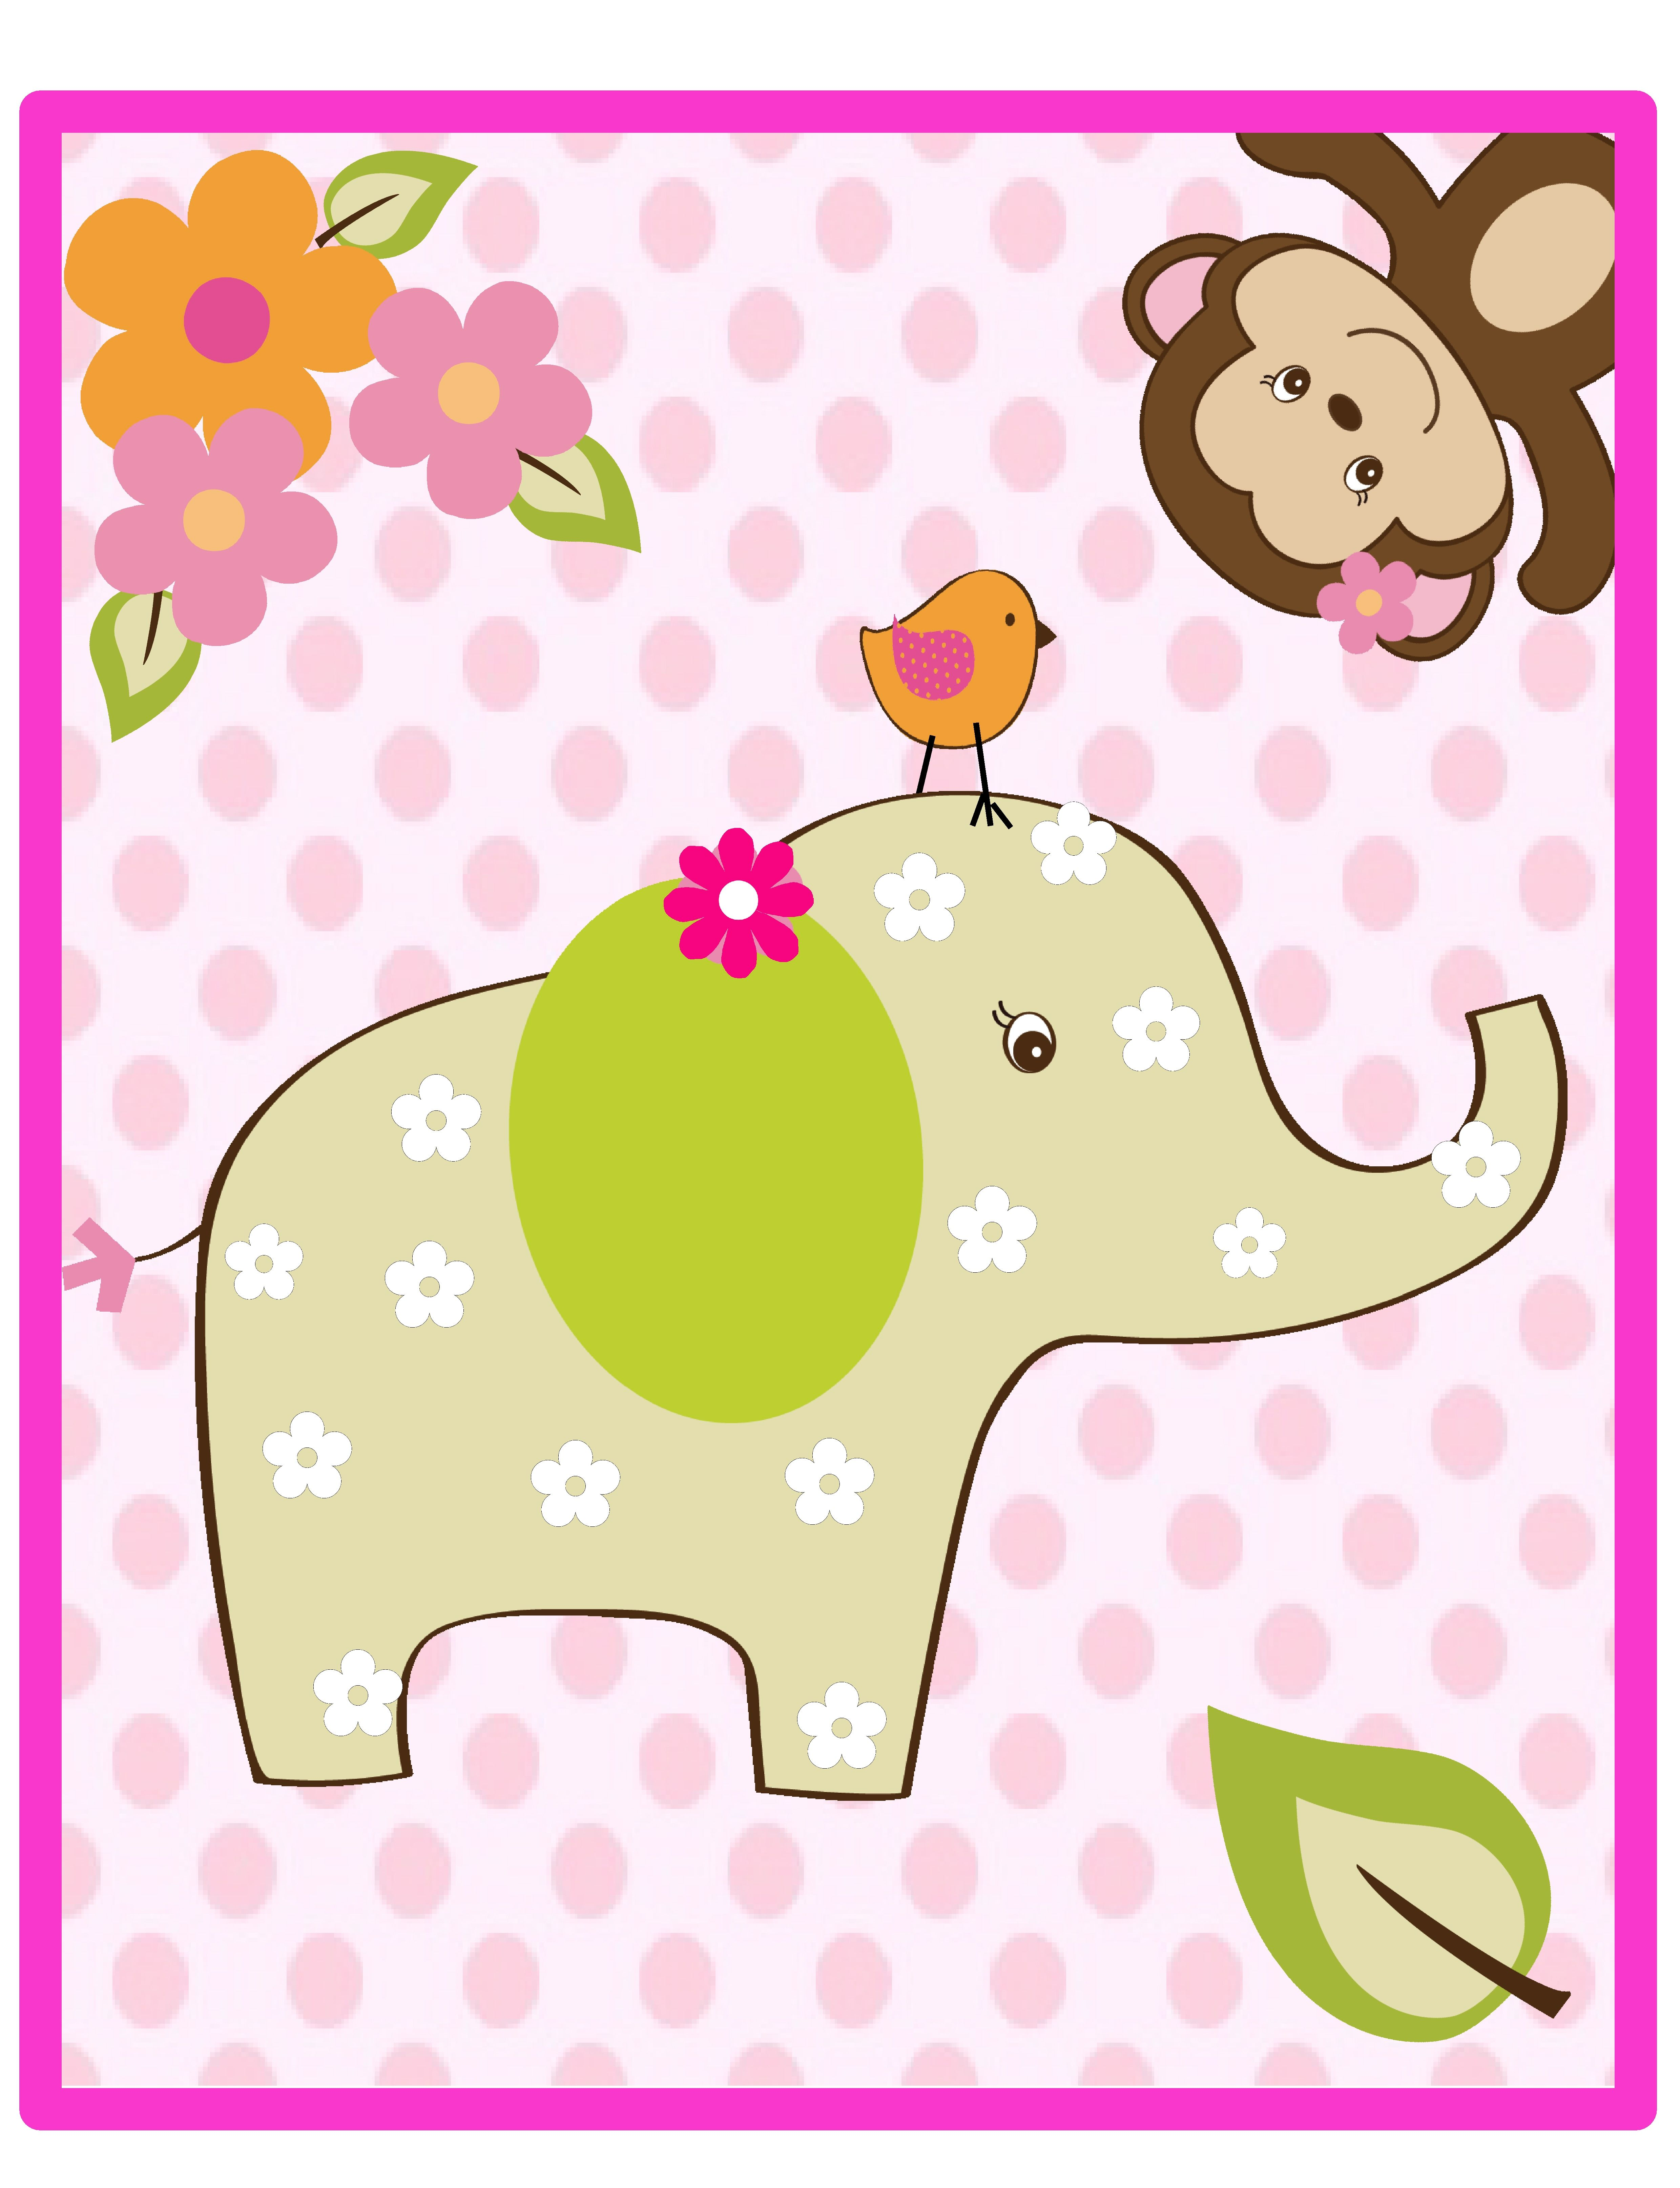 Print for framing for Jungle Jill nursery for Arianna | DECOR ...